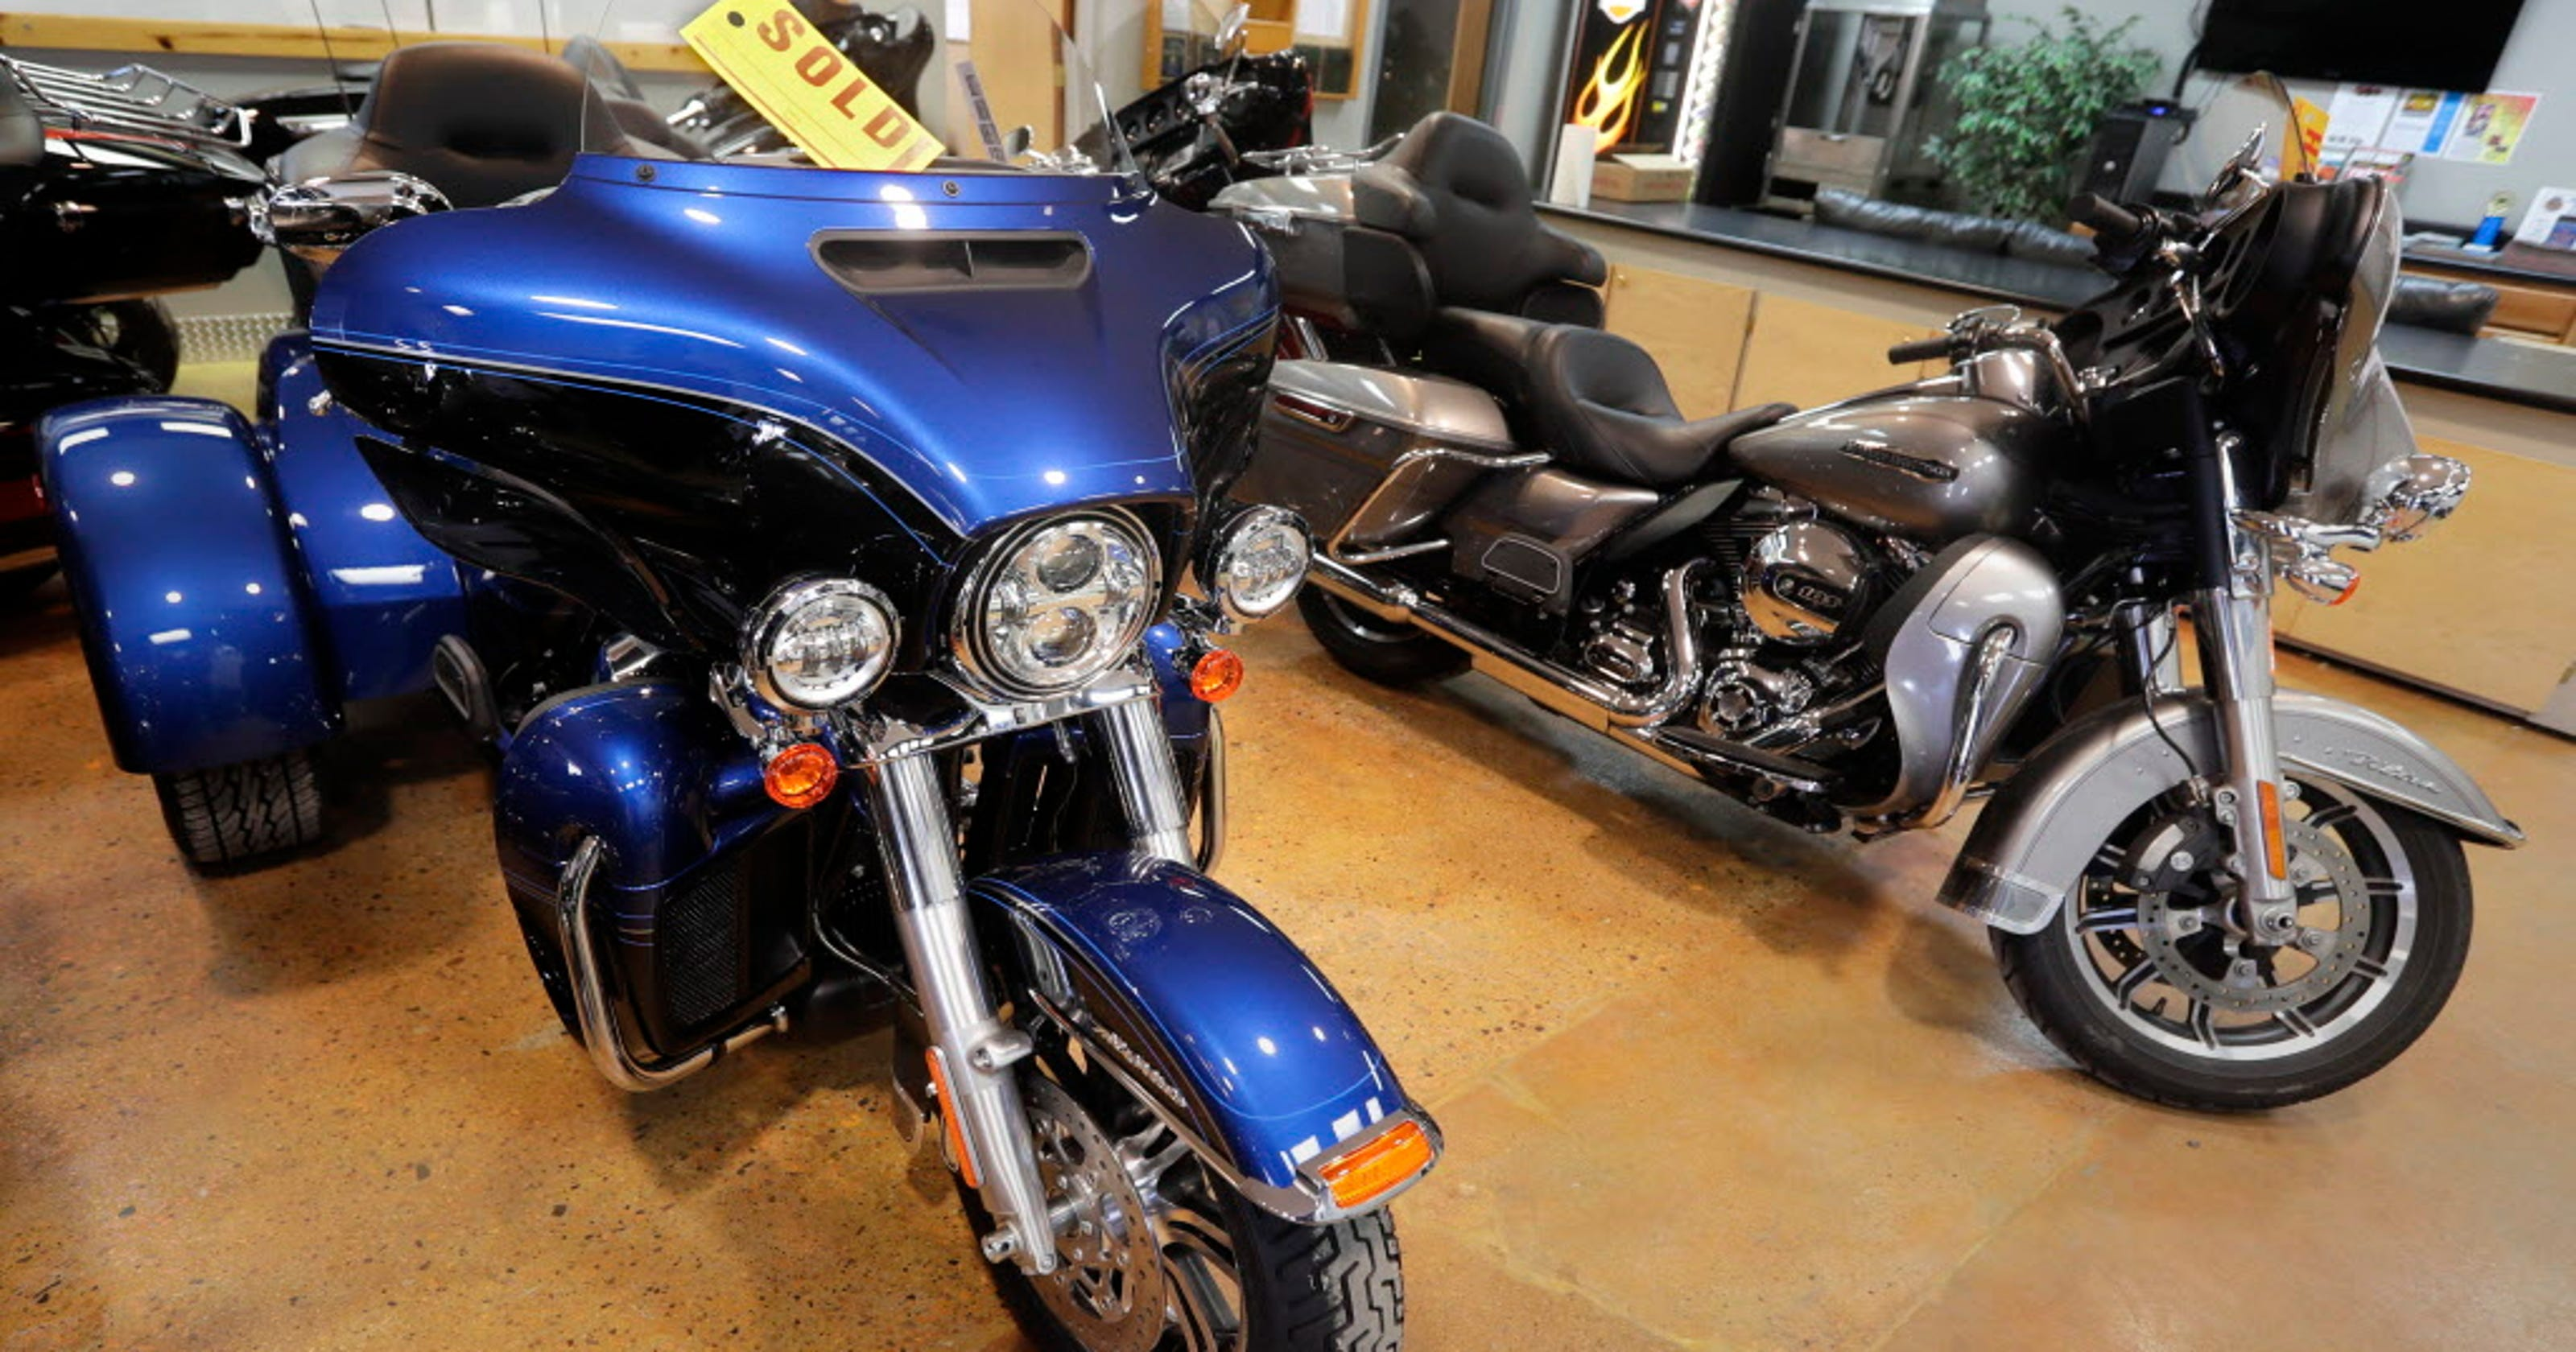 Harley-Davidson, other motorcycle makers face big challenges in 2018